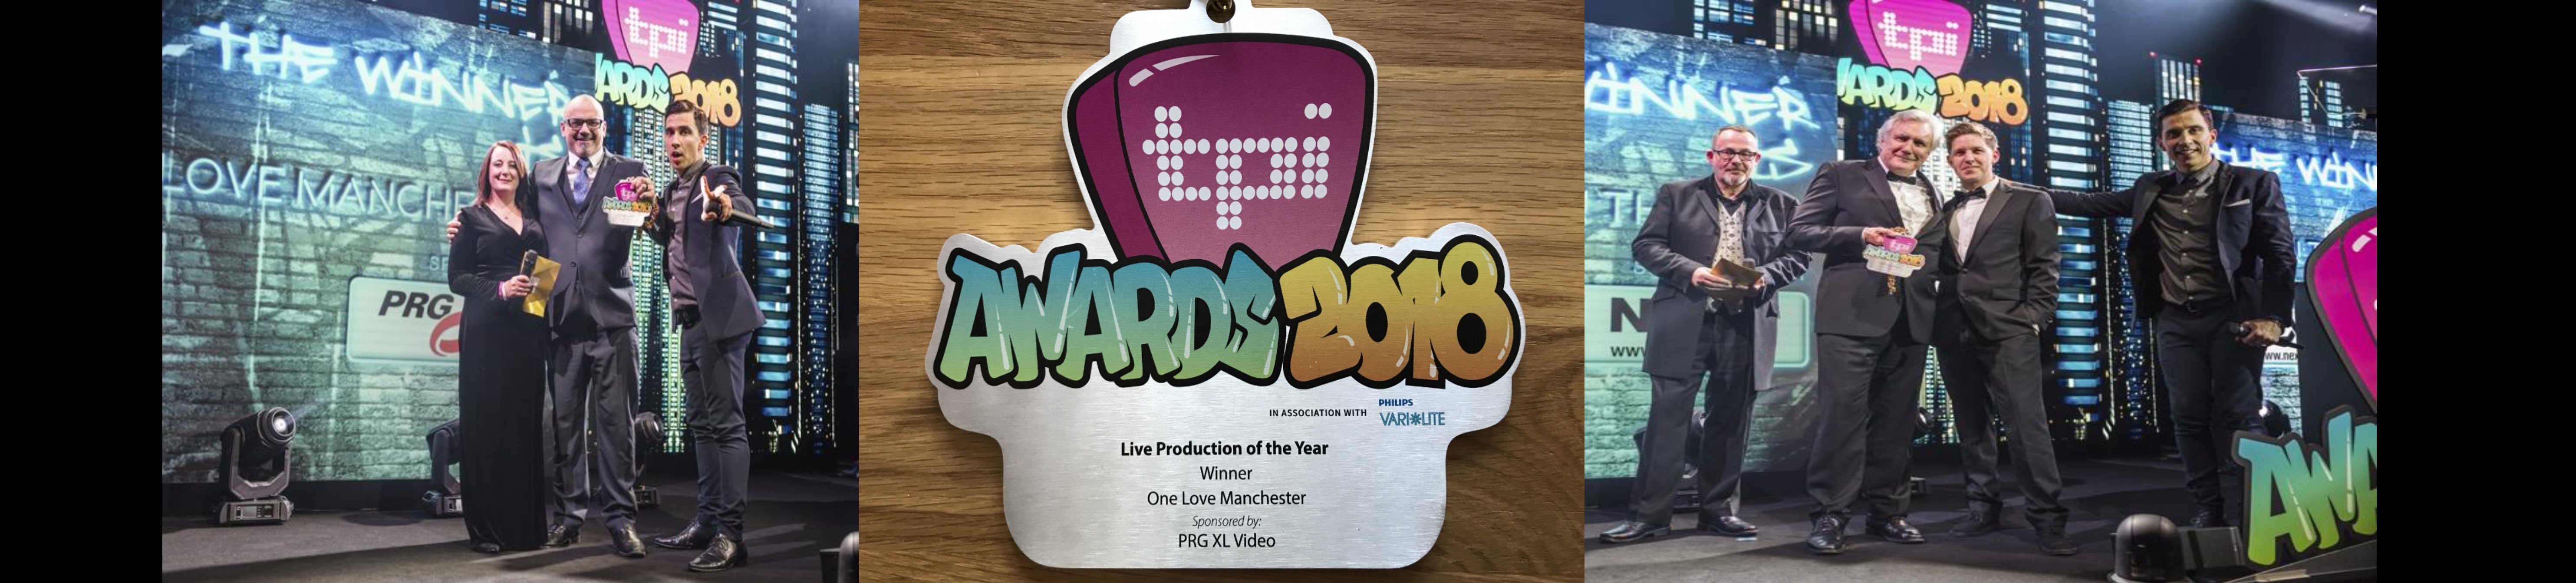 TPI-Awards-2018-2